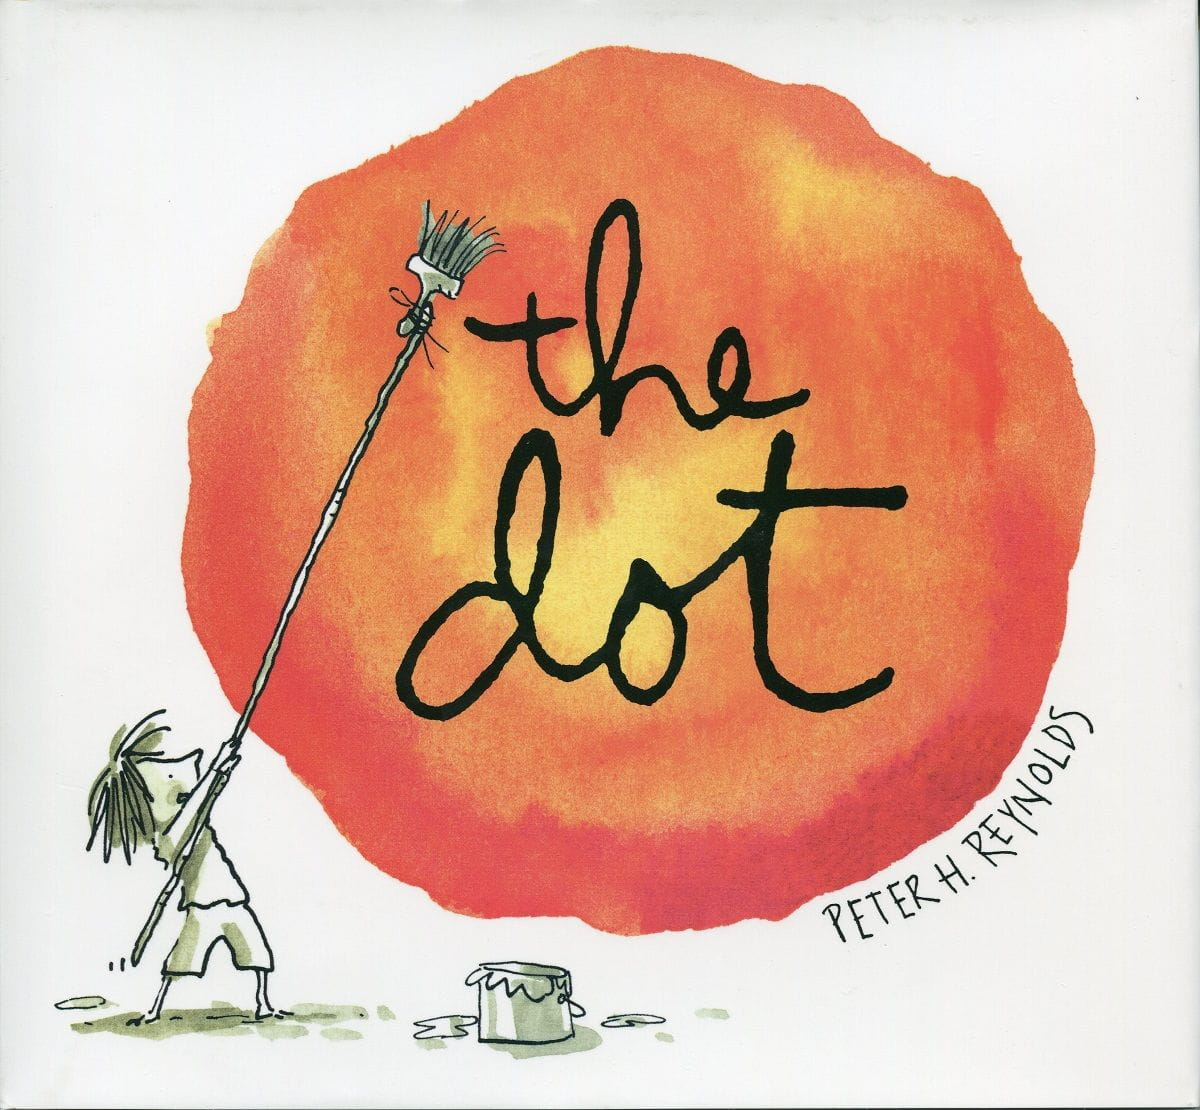 The Dot cover